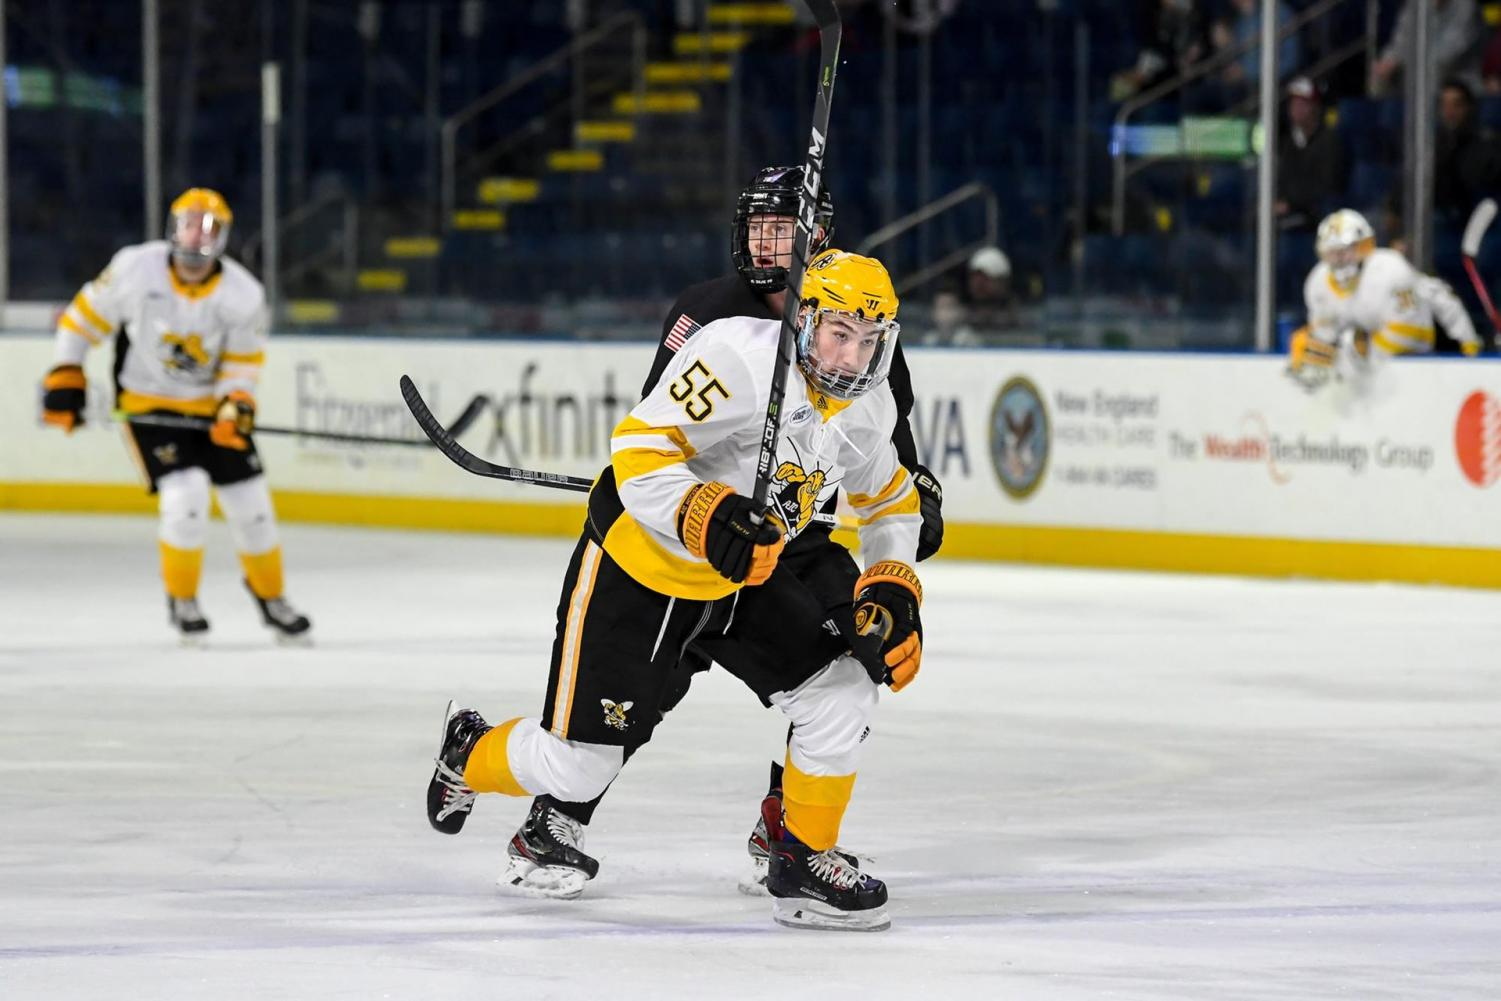 Chris Dodero during the AIC vs Niagra that took place 12/13/19